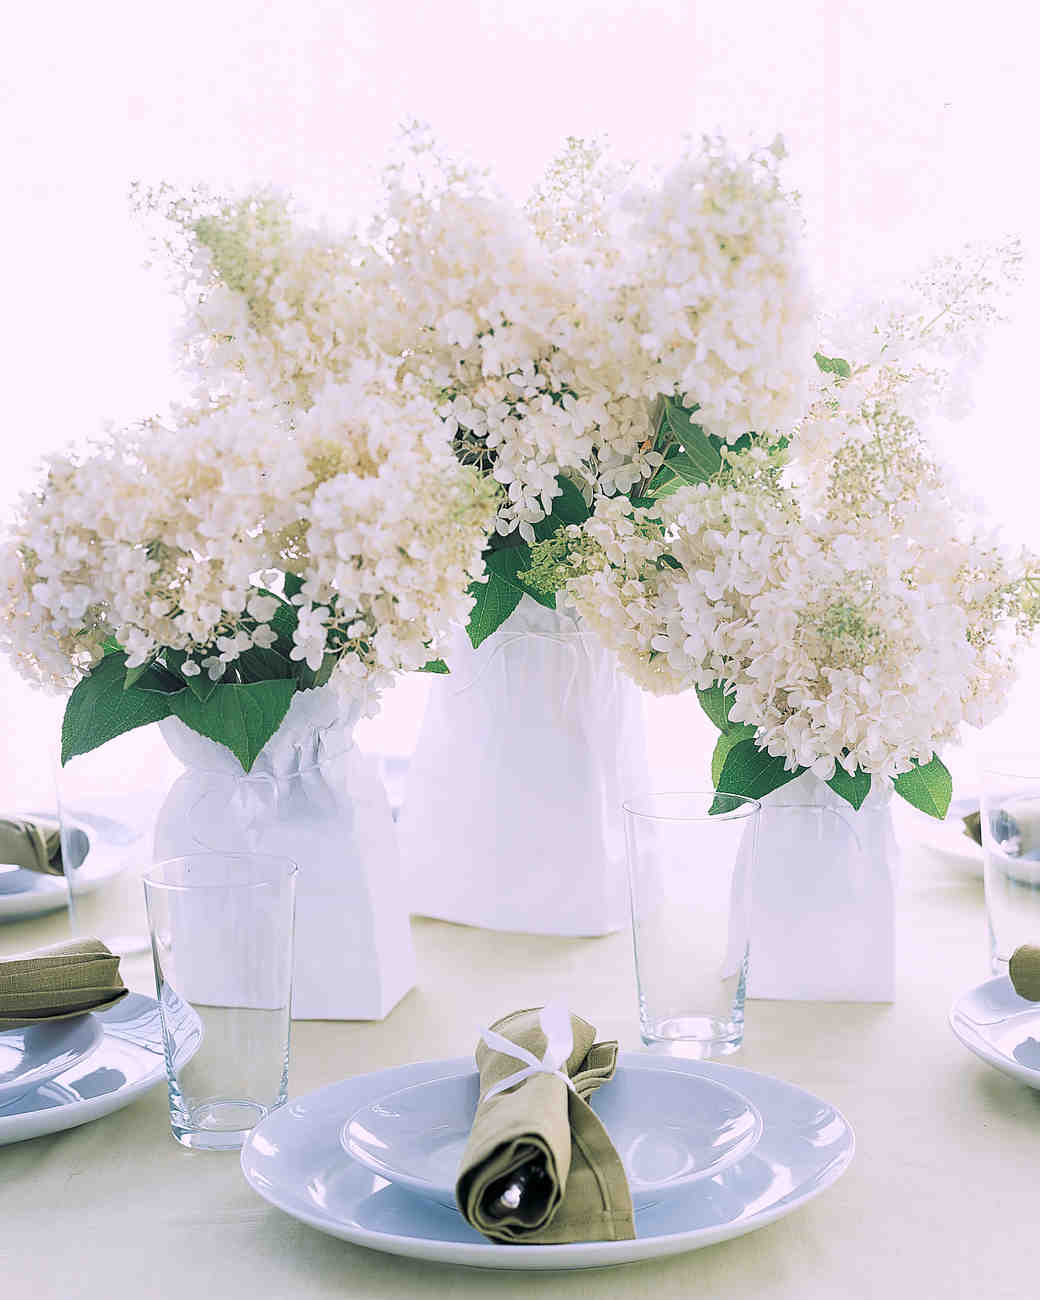 affordable wedding centerpieces that still look elevated martha rh marthastewartweddings com tall wedding centerpiece ideas on a budget beach wedding centerpiece ideas on a budget